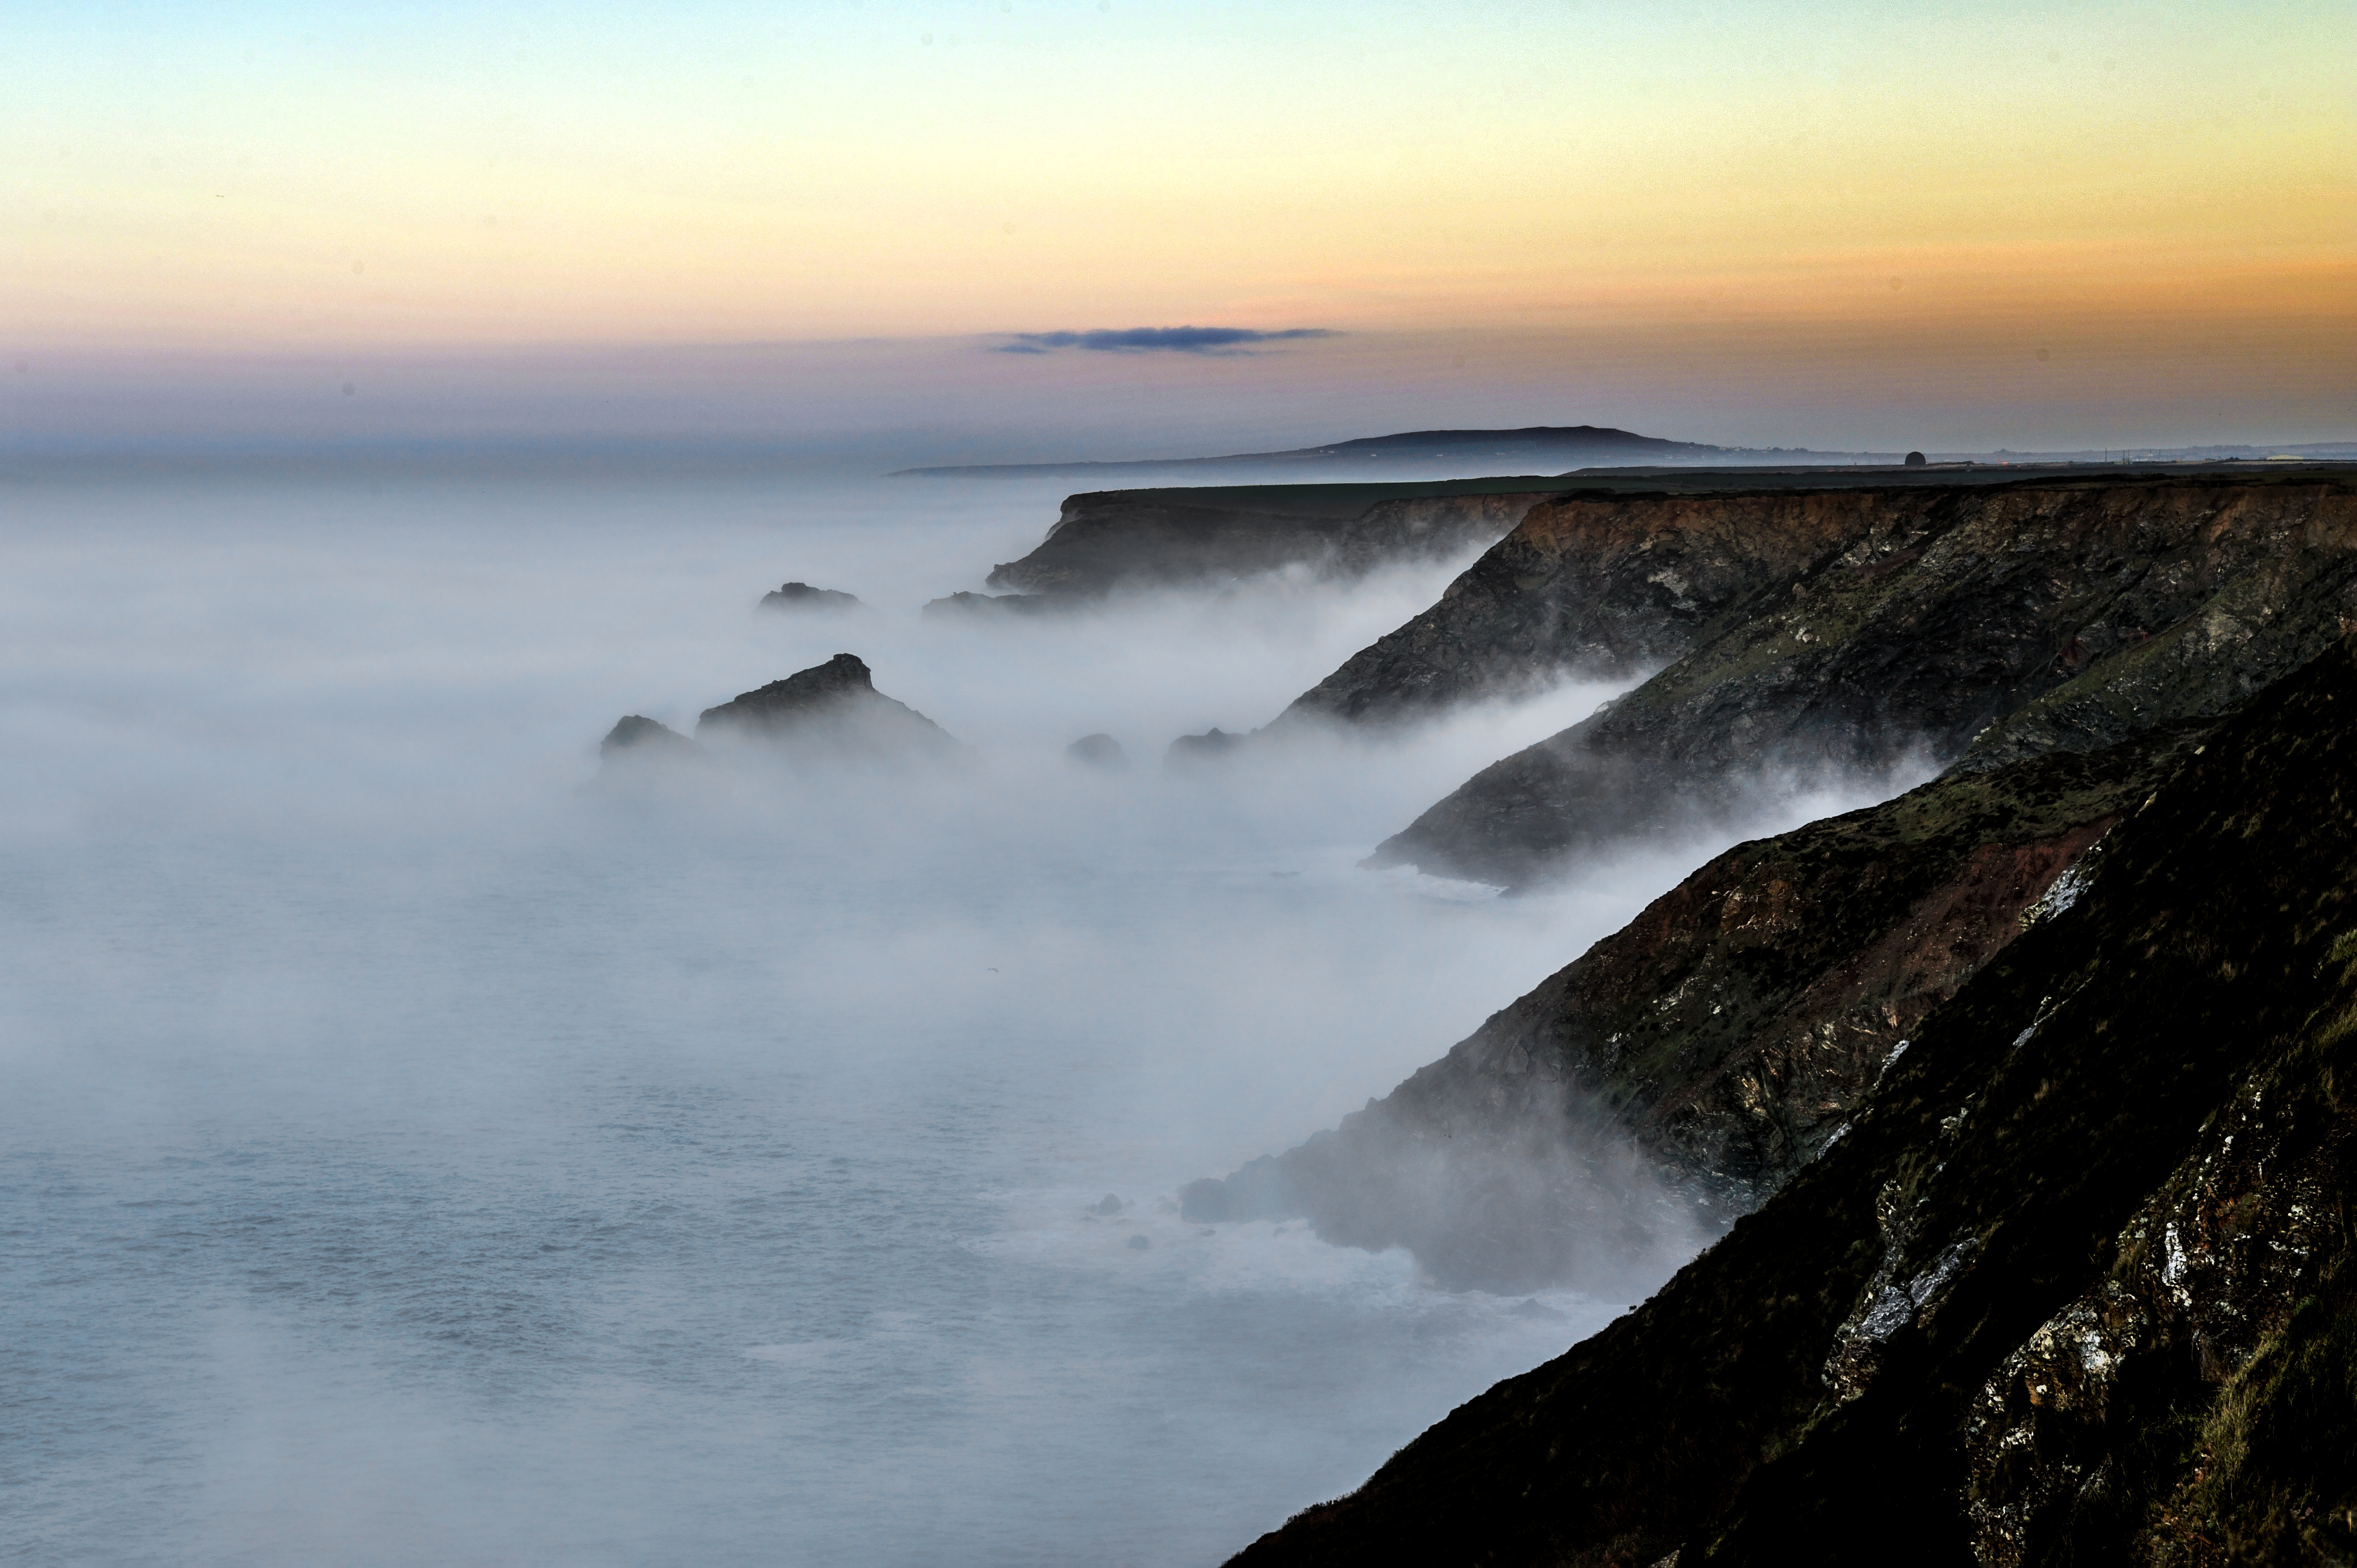 149498 download wallpaper Nature, Shore, Bank, Sea, Fog, Dusk, Twilight, Morning screensavers and pictures for free